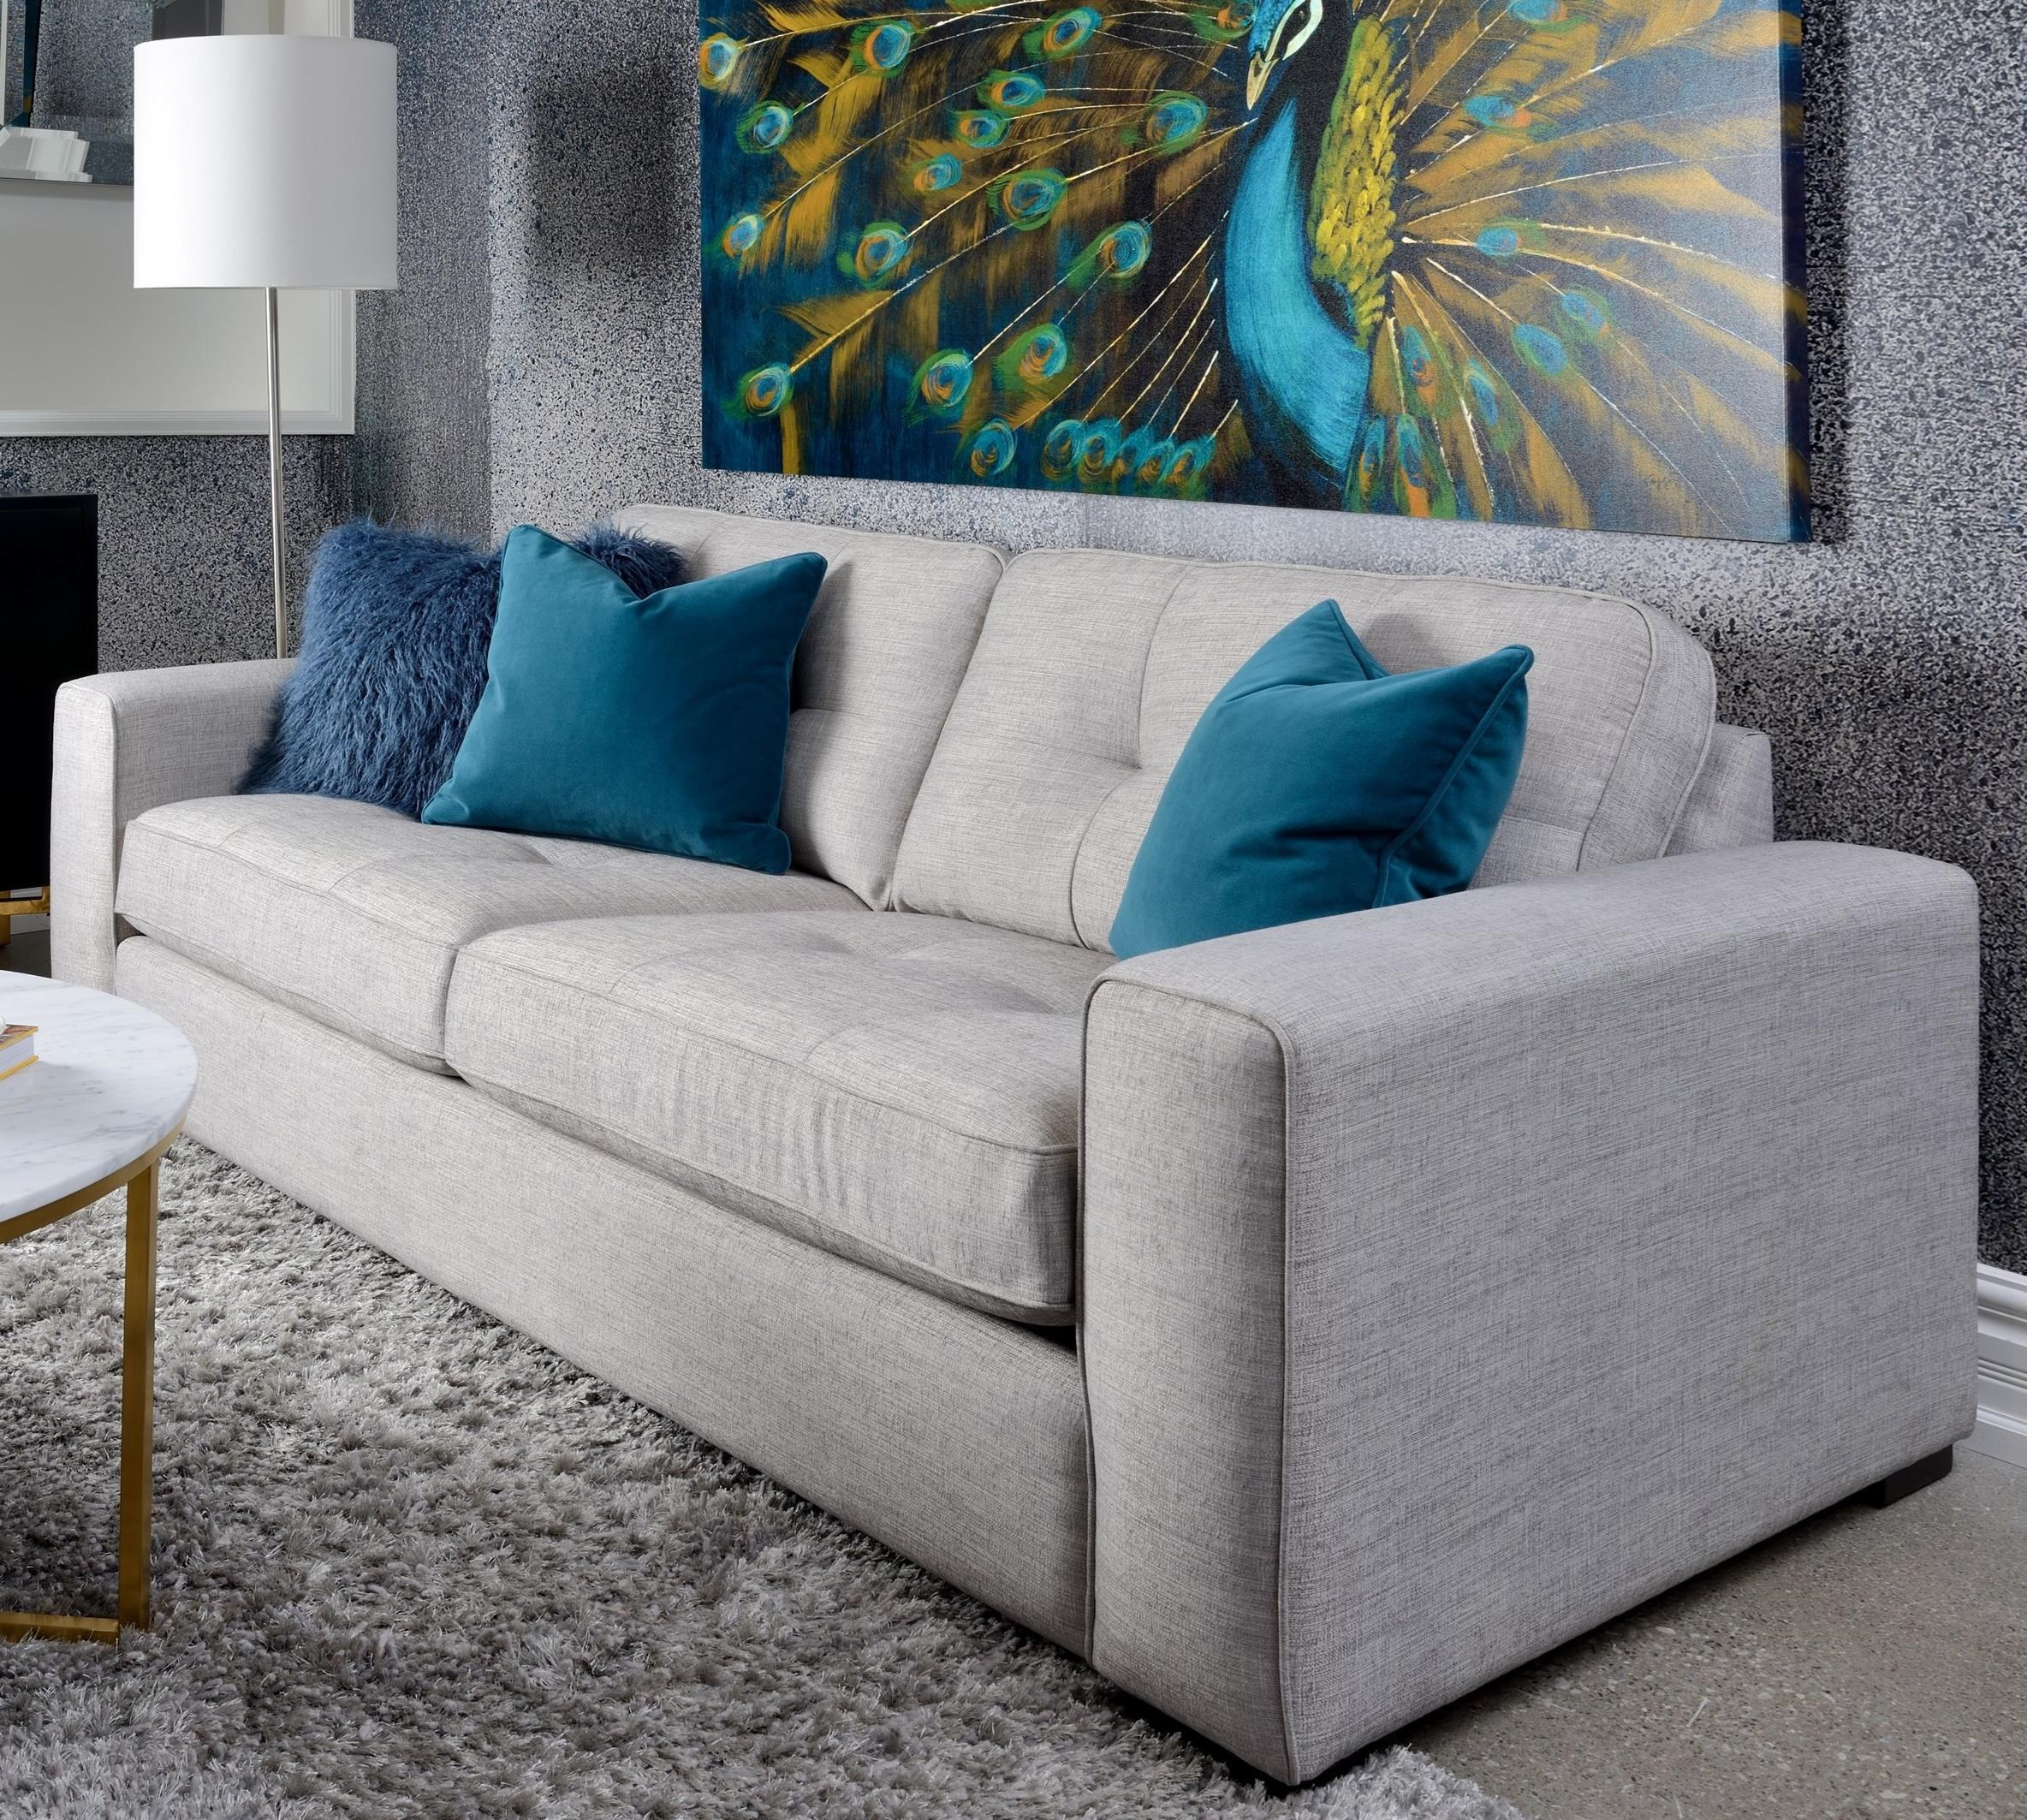 2990 Sofa by Decor-Rest at Rooms for Less